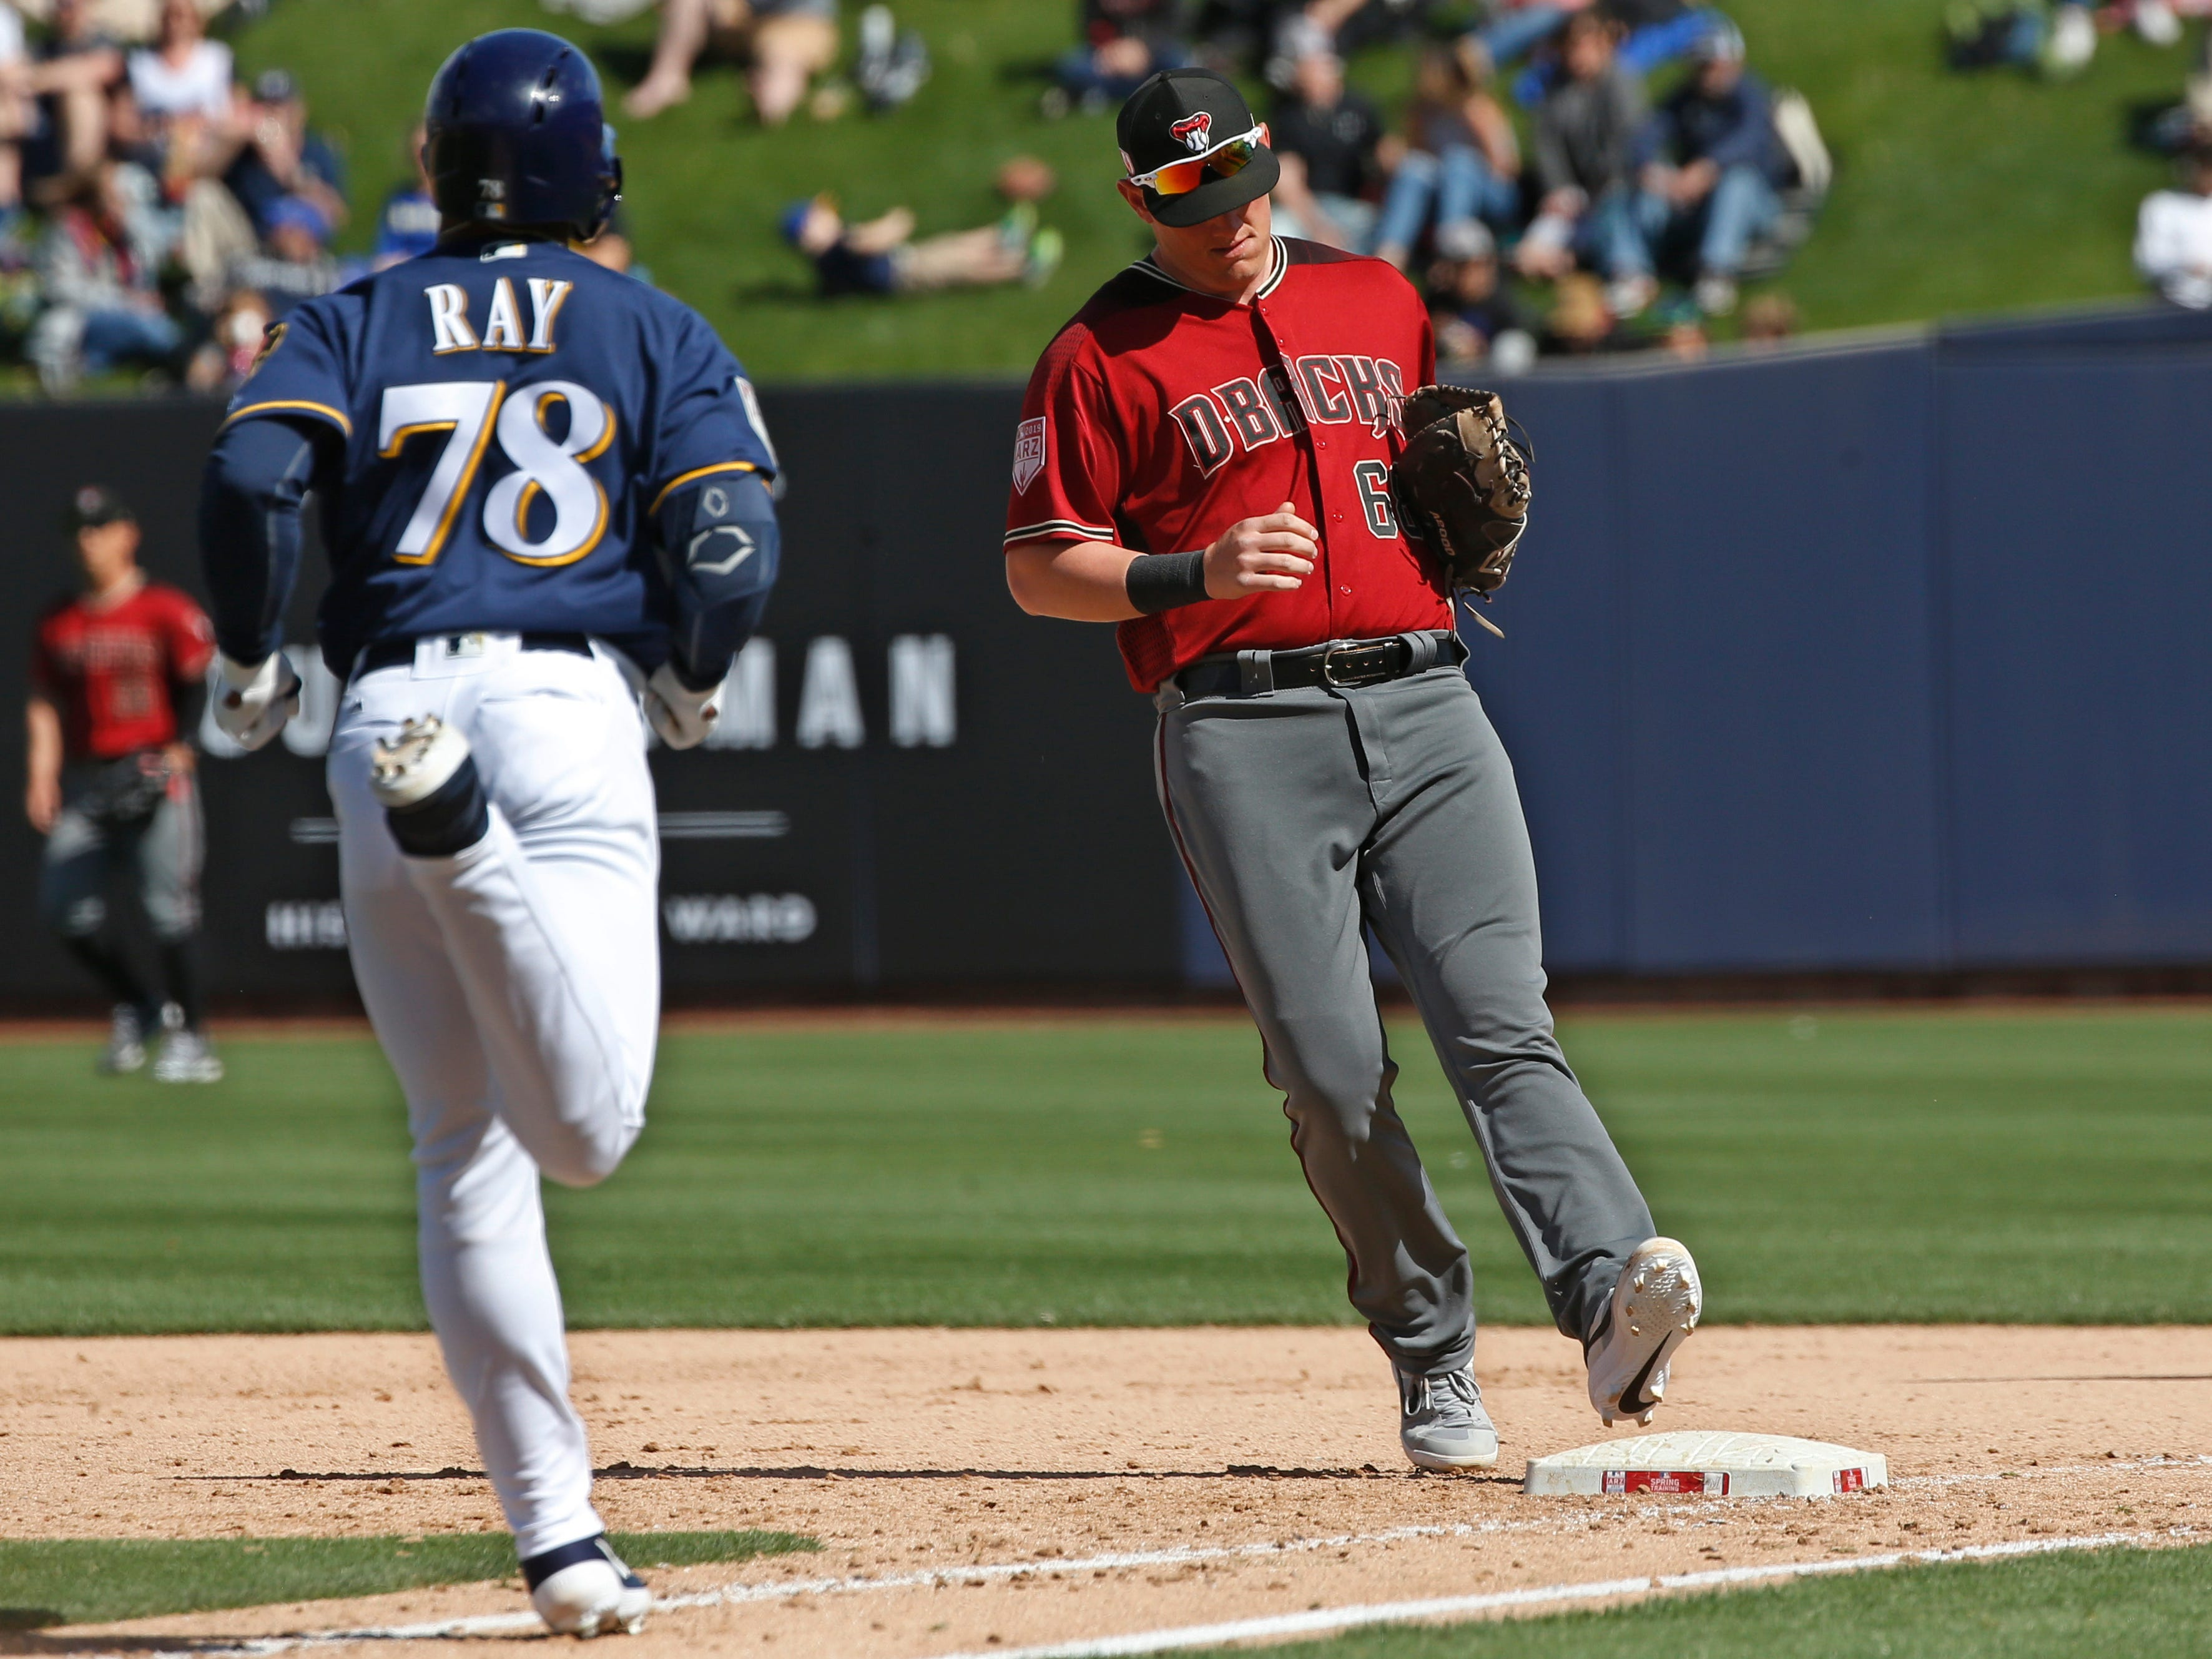 Arizona Diamondbacks first baseman Kevin Cron (68) forces out Milwaukee Brewers' Corey Ray (78) unassisted on a ground ball in the seventh inning of a spring training baseball game Friday, March 8, 2019, in Phoenix.